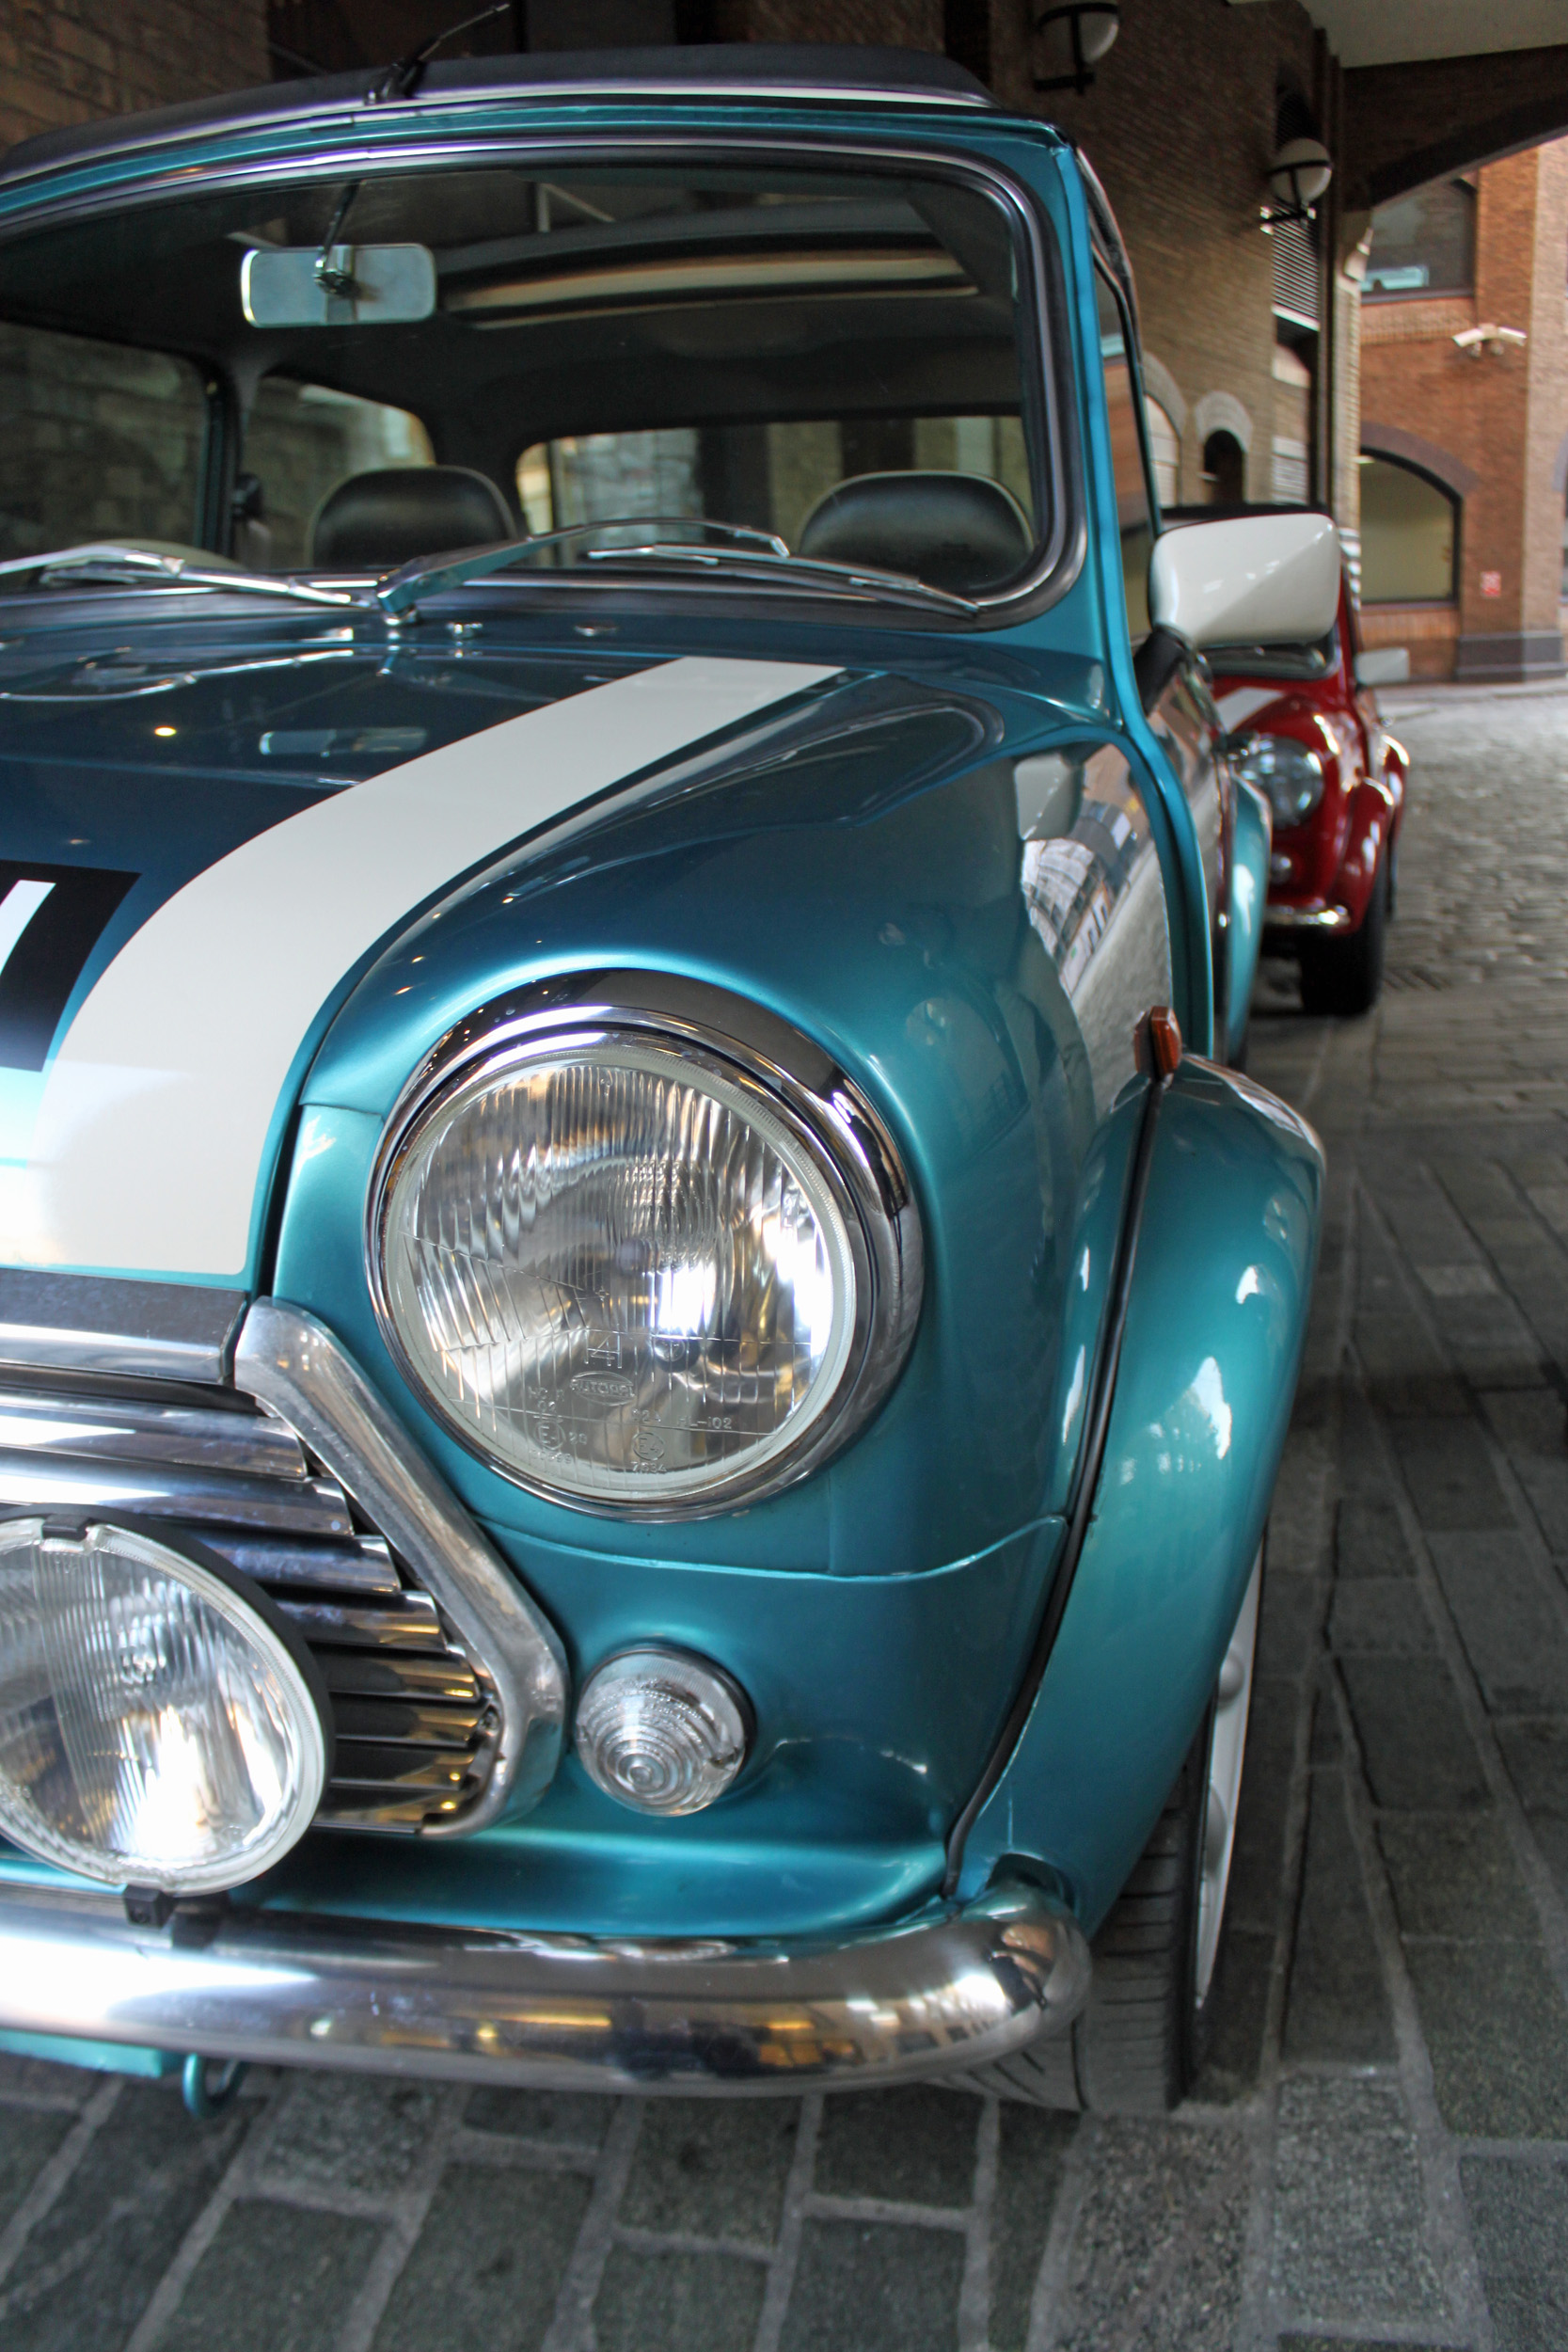 Small Car, Big City: Driving a Vintage Mini Through the Streets of ...